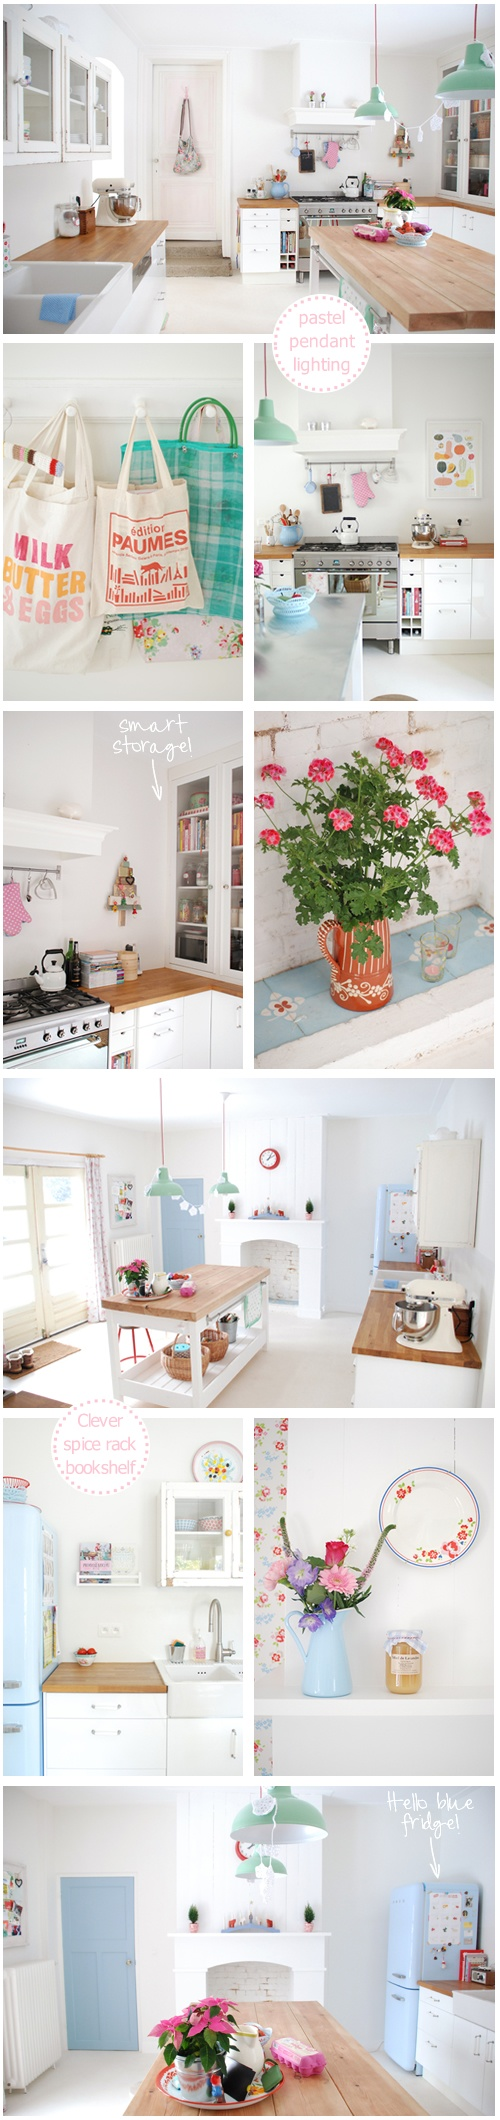 Not sure Kirk would like so much pastel in our home but I'm totally obsessed at the minute!